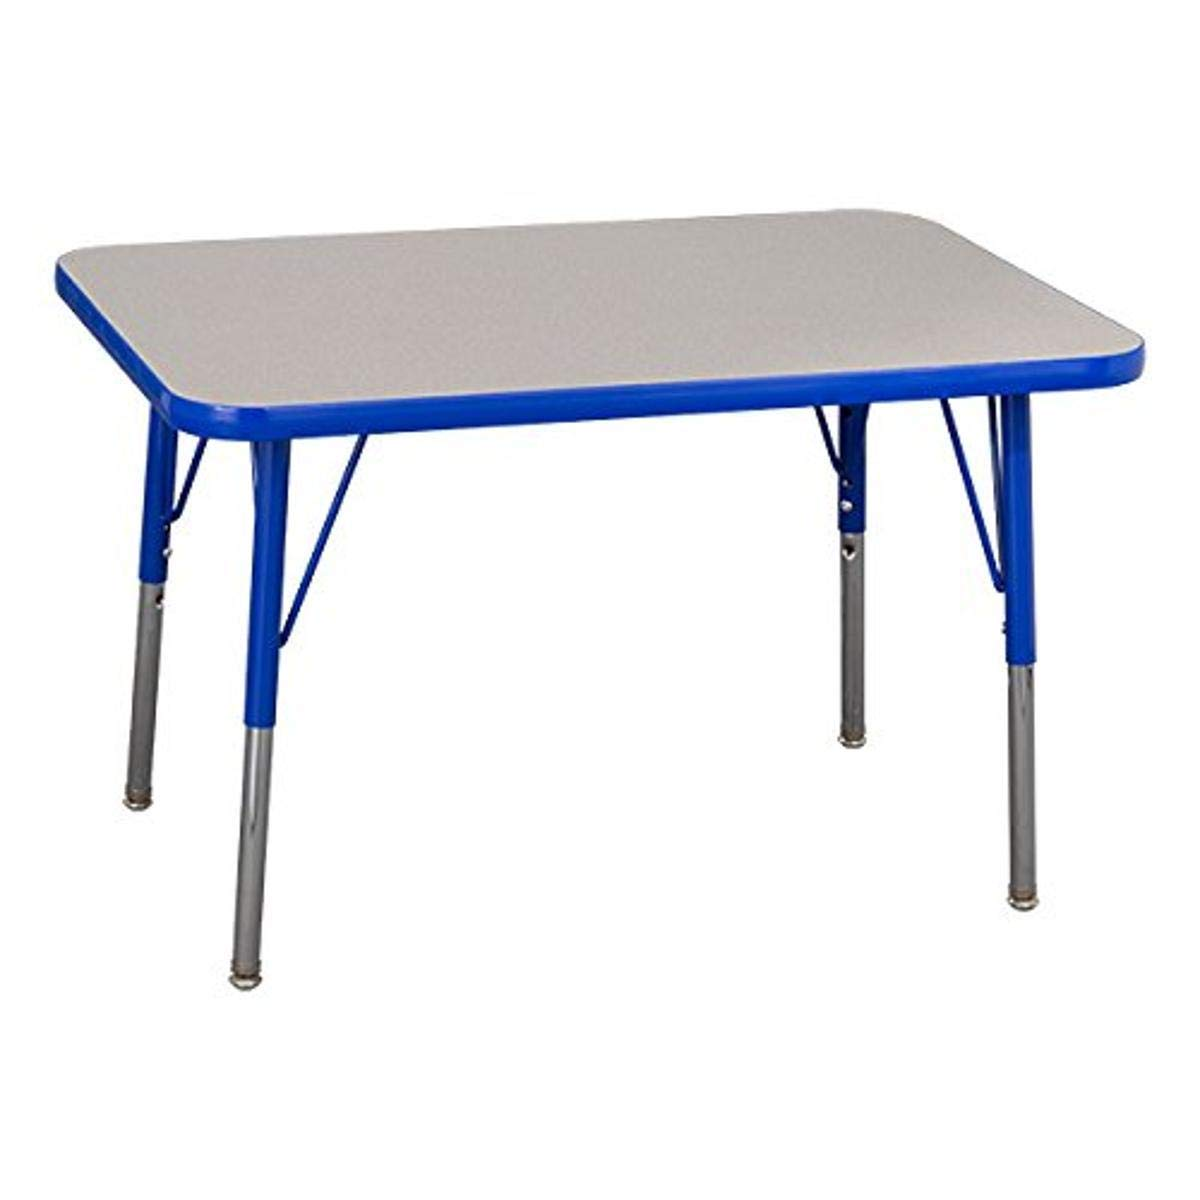 Amazon Com Norwood Commercial Furniture Adjustable Height Rectangle Activity Table 24 X 48 Grey Blue Industrial Scientific